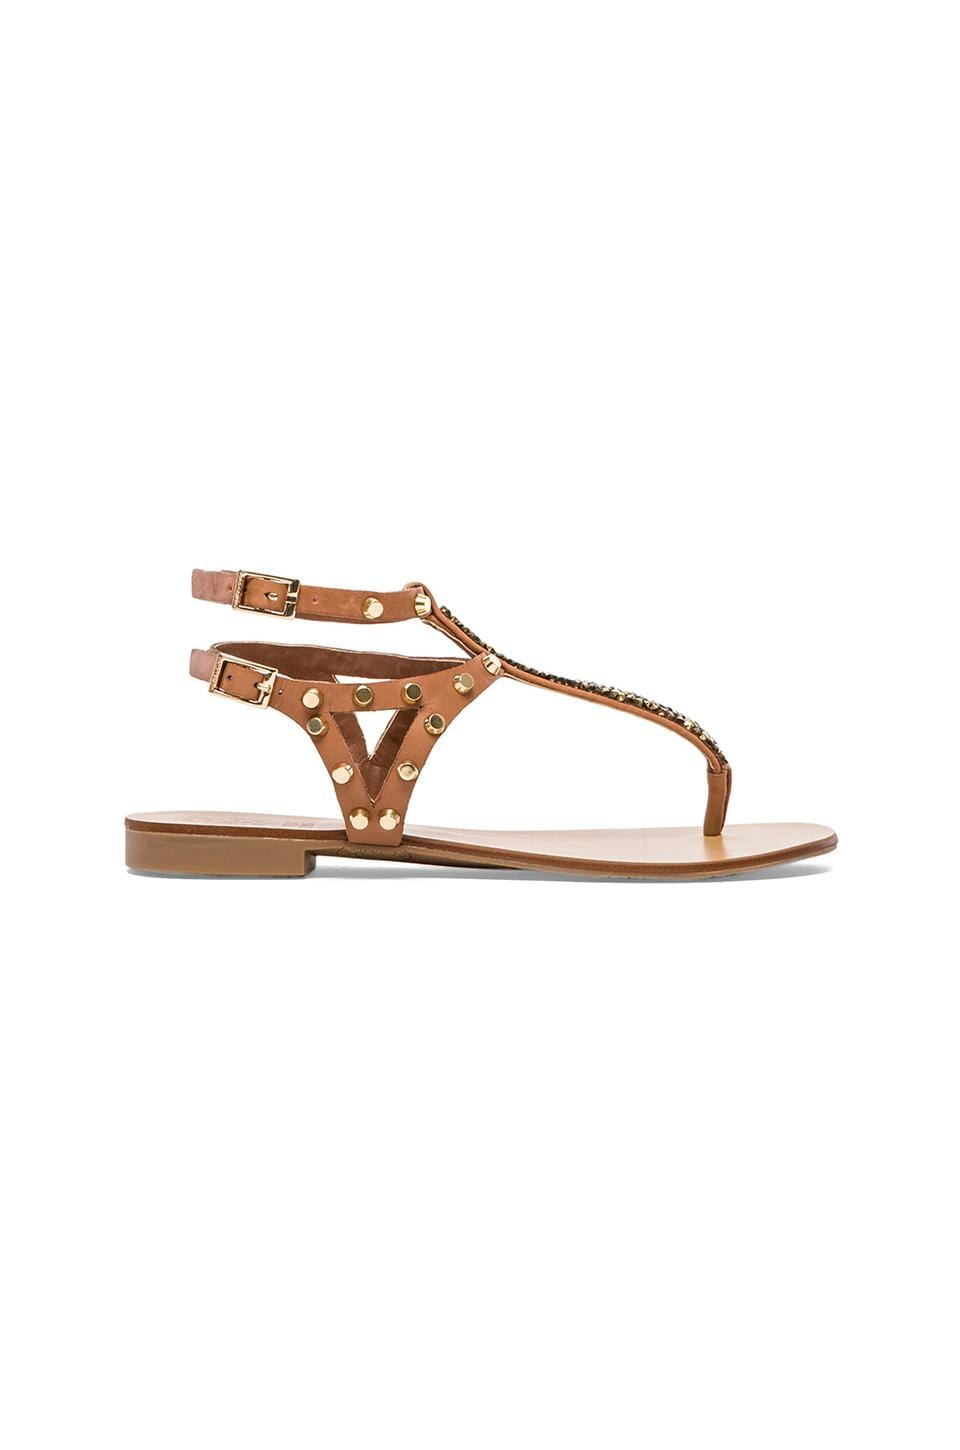 Vince Camuto Jemile Sandal in Fudge